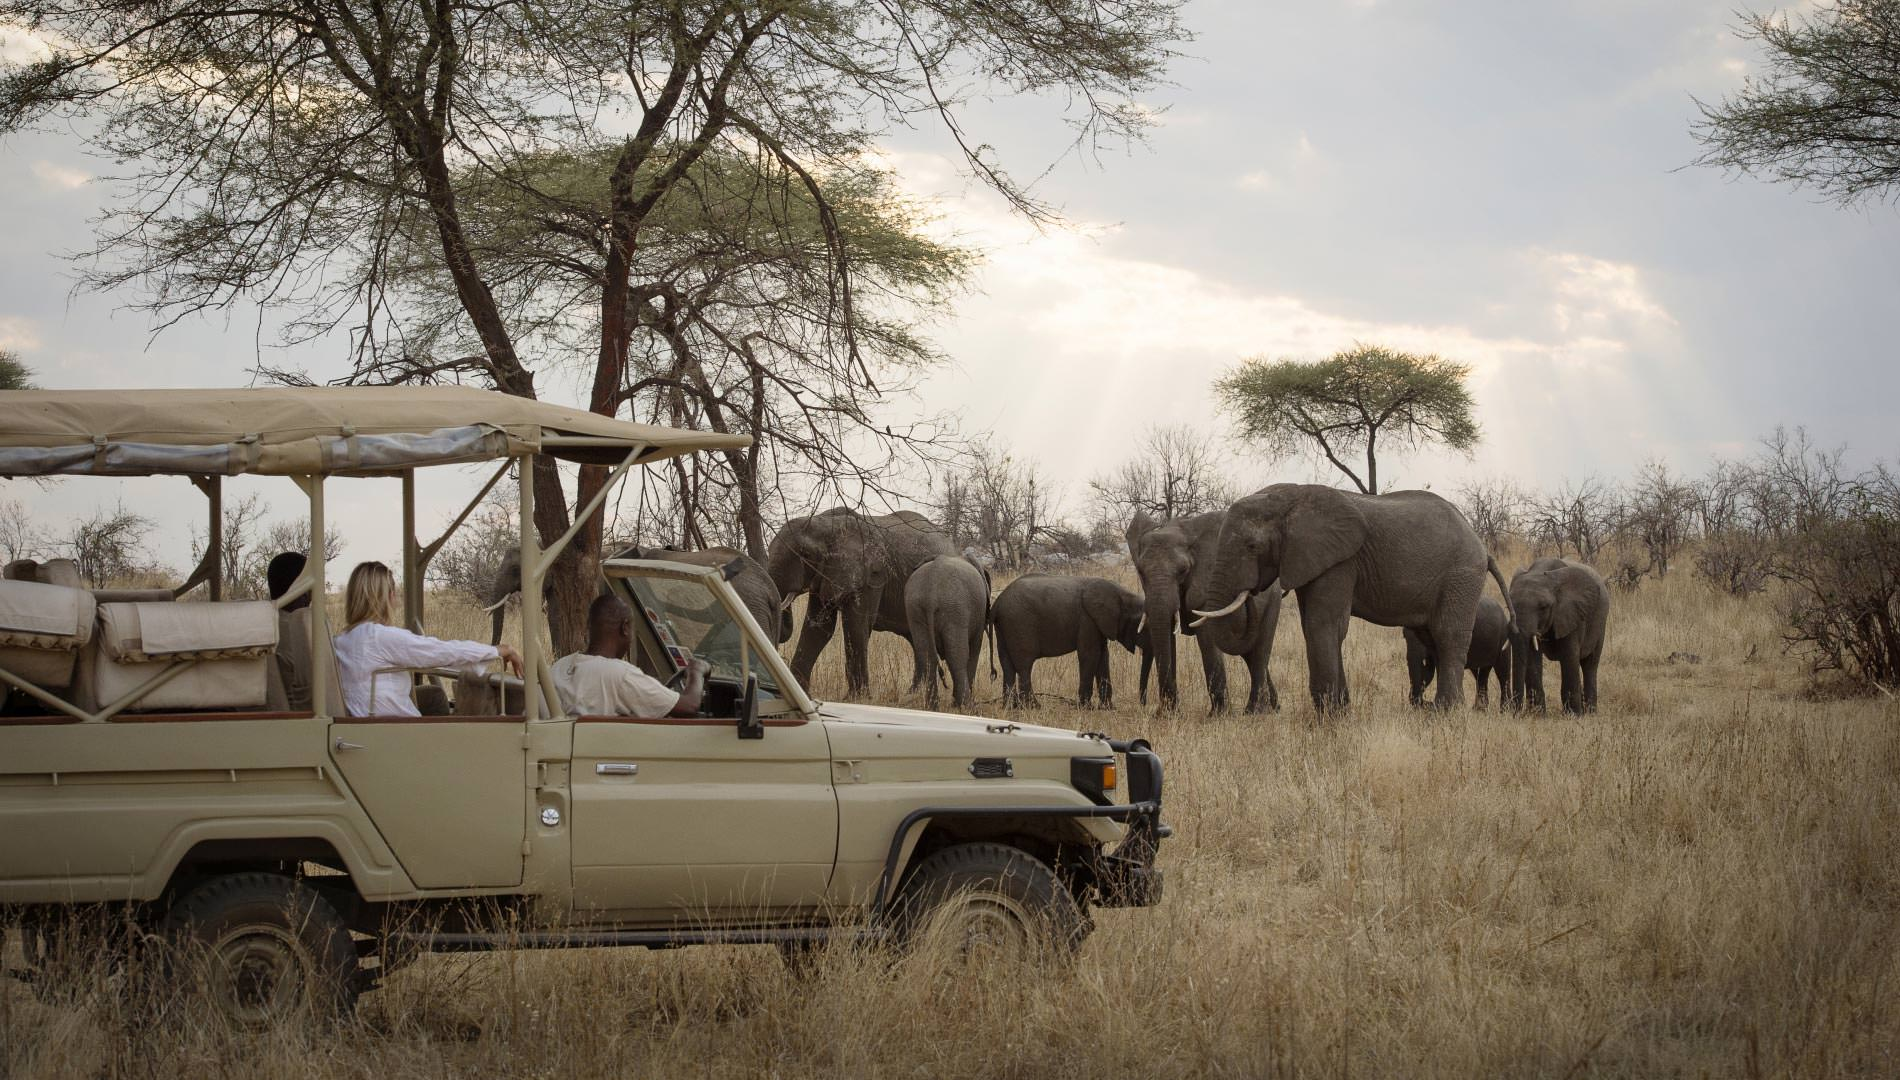 Viewing elephants from an open vehicle